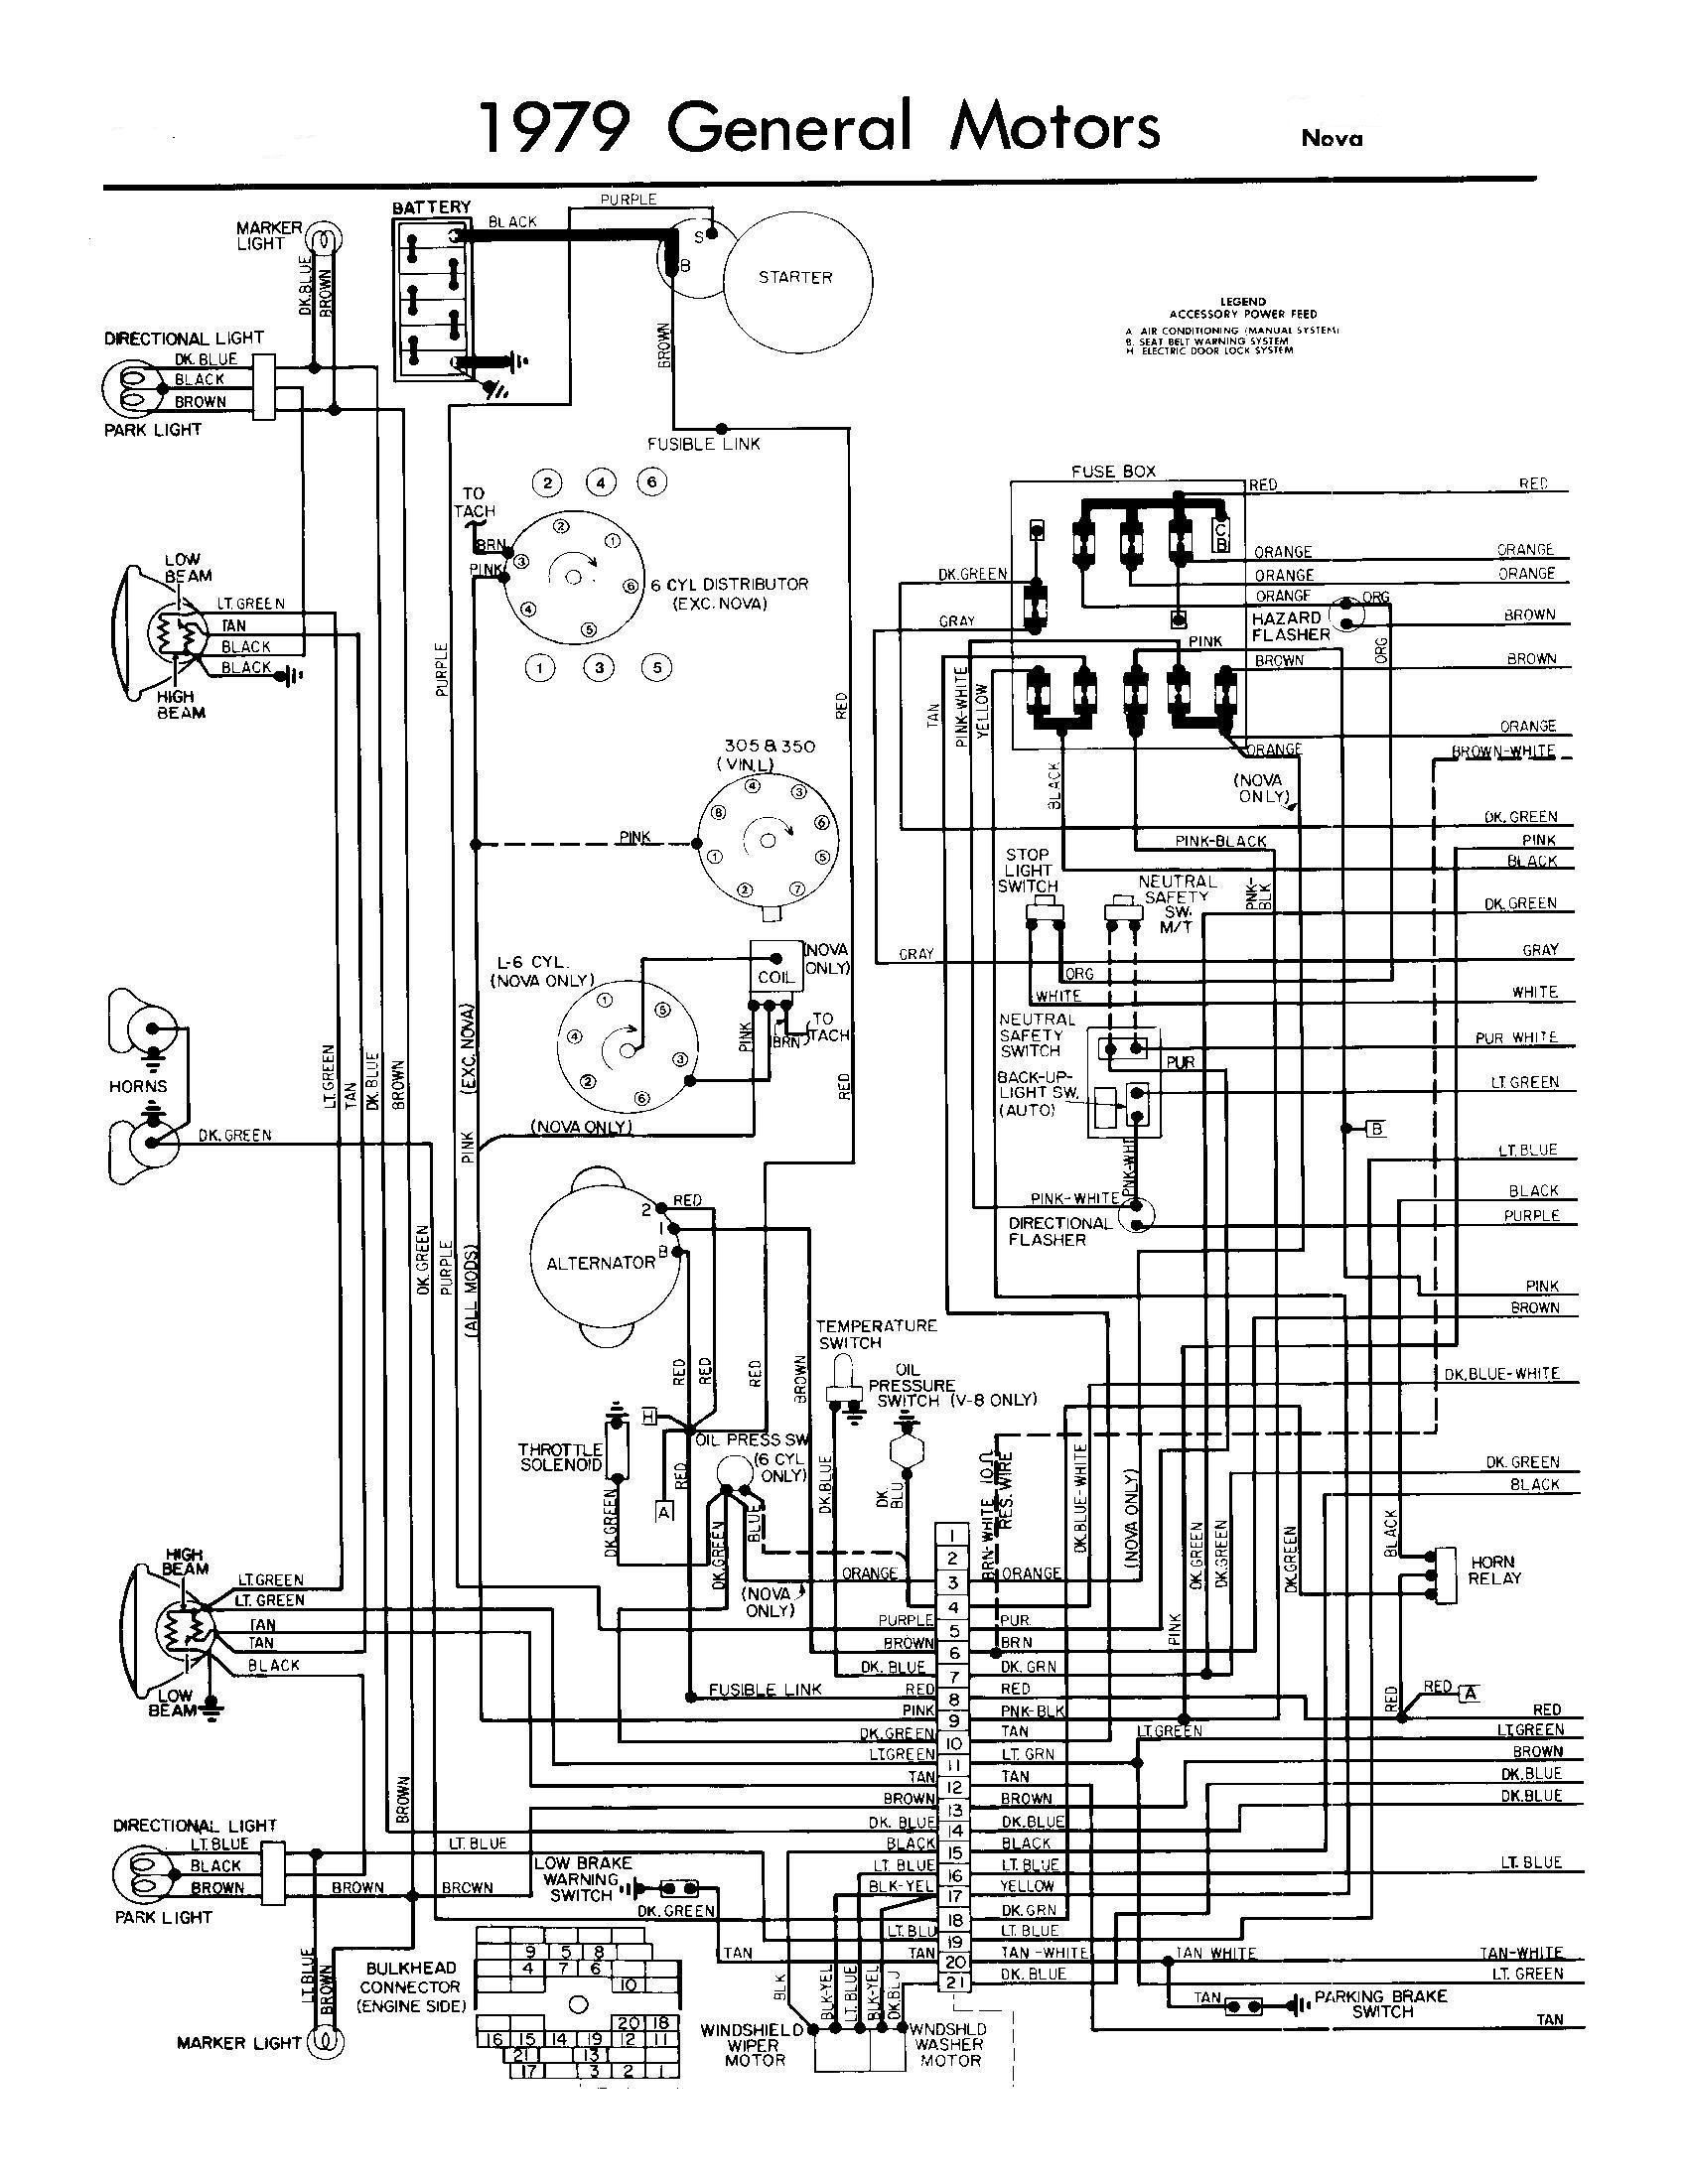 2003 chevy malibu radio wiring diagram